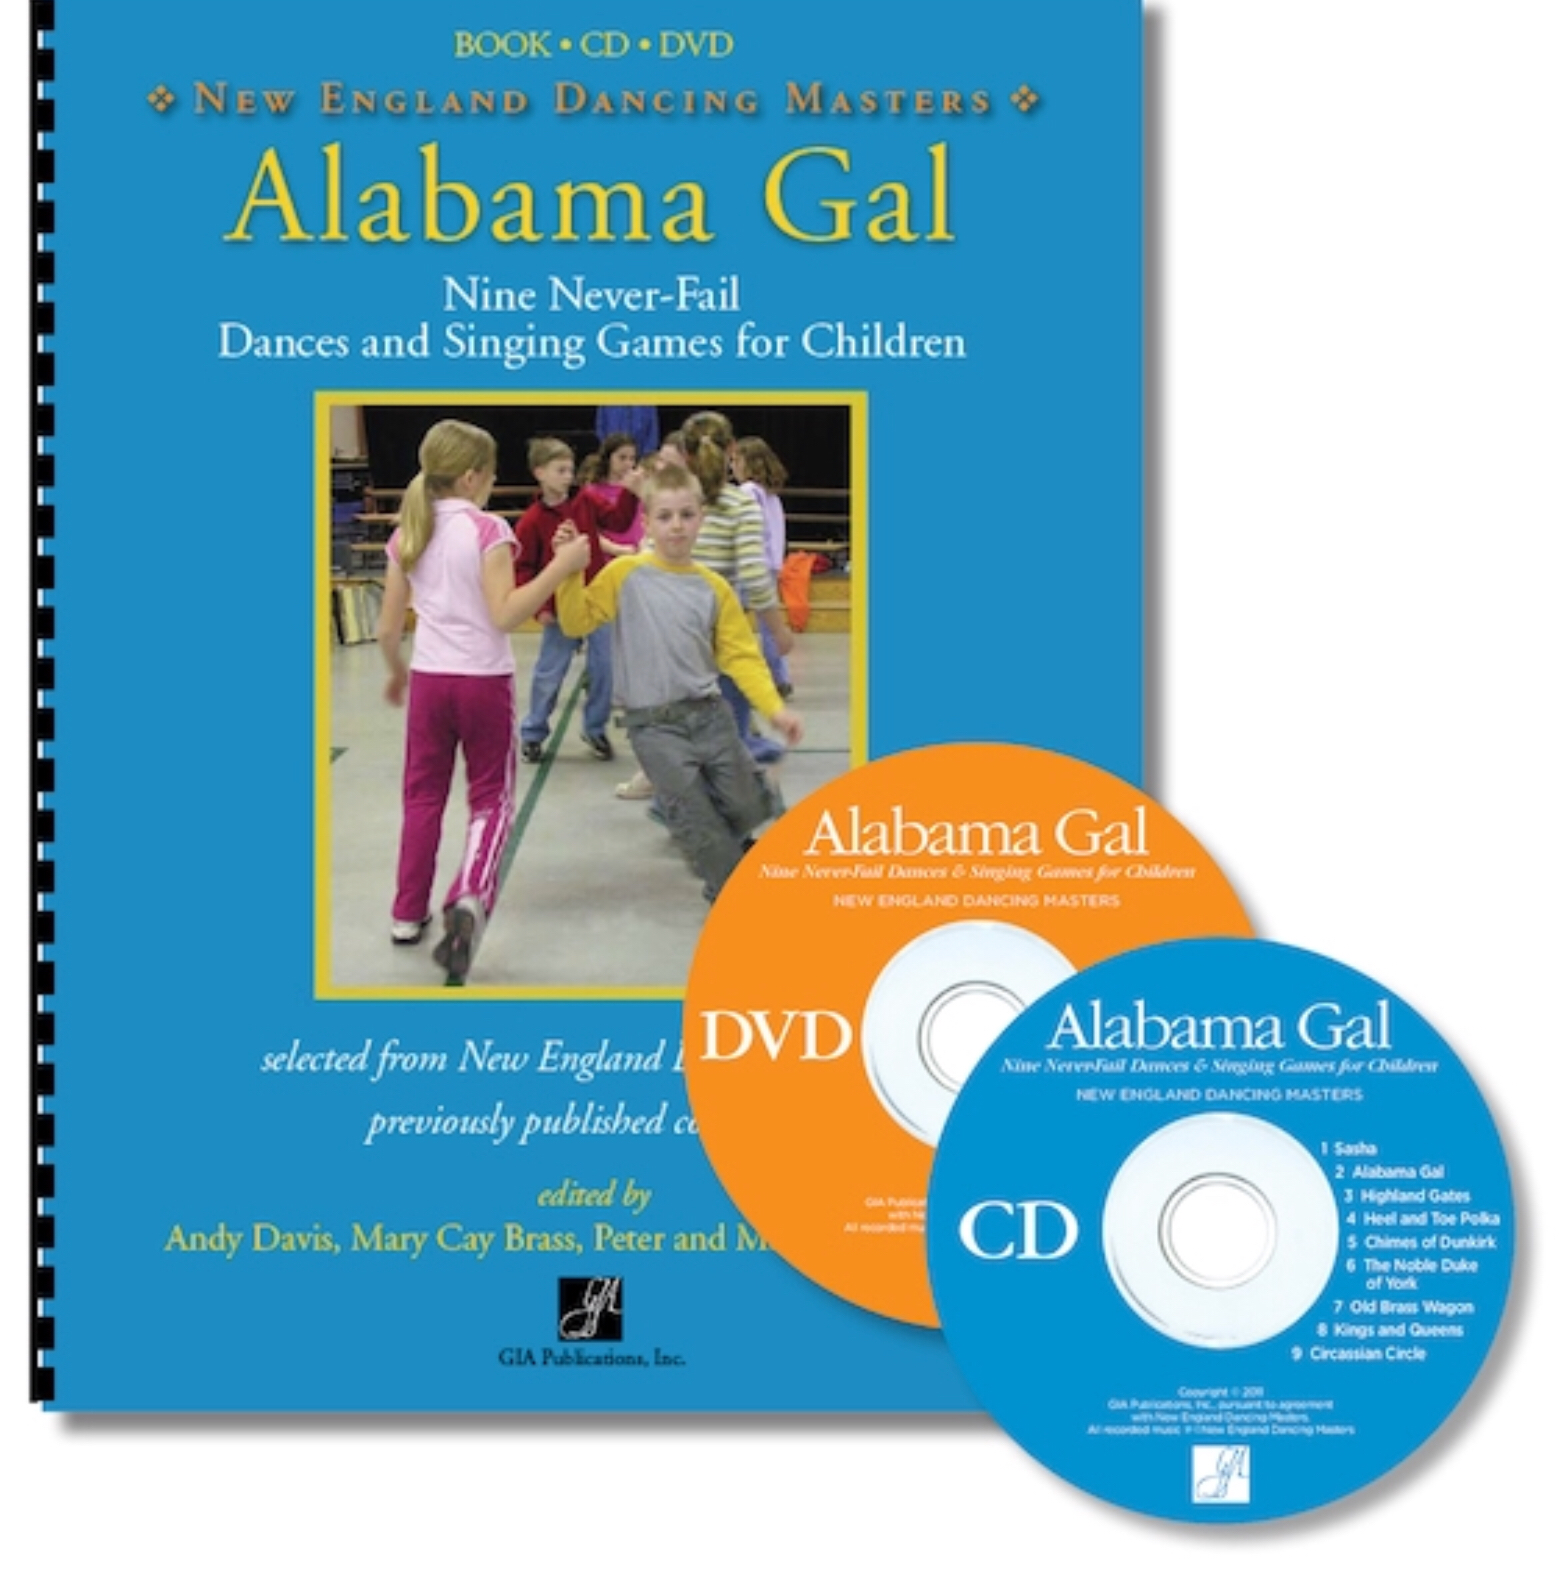 Alabama Gal(book And Cd) by New England Dancing Masters